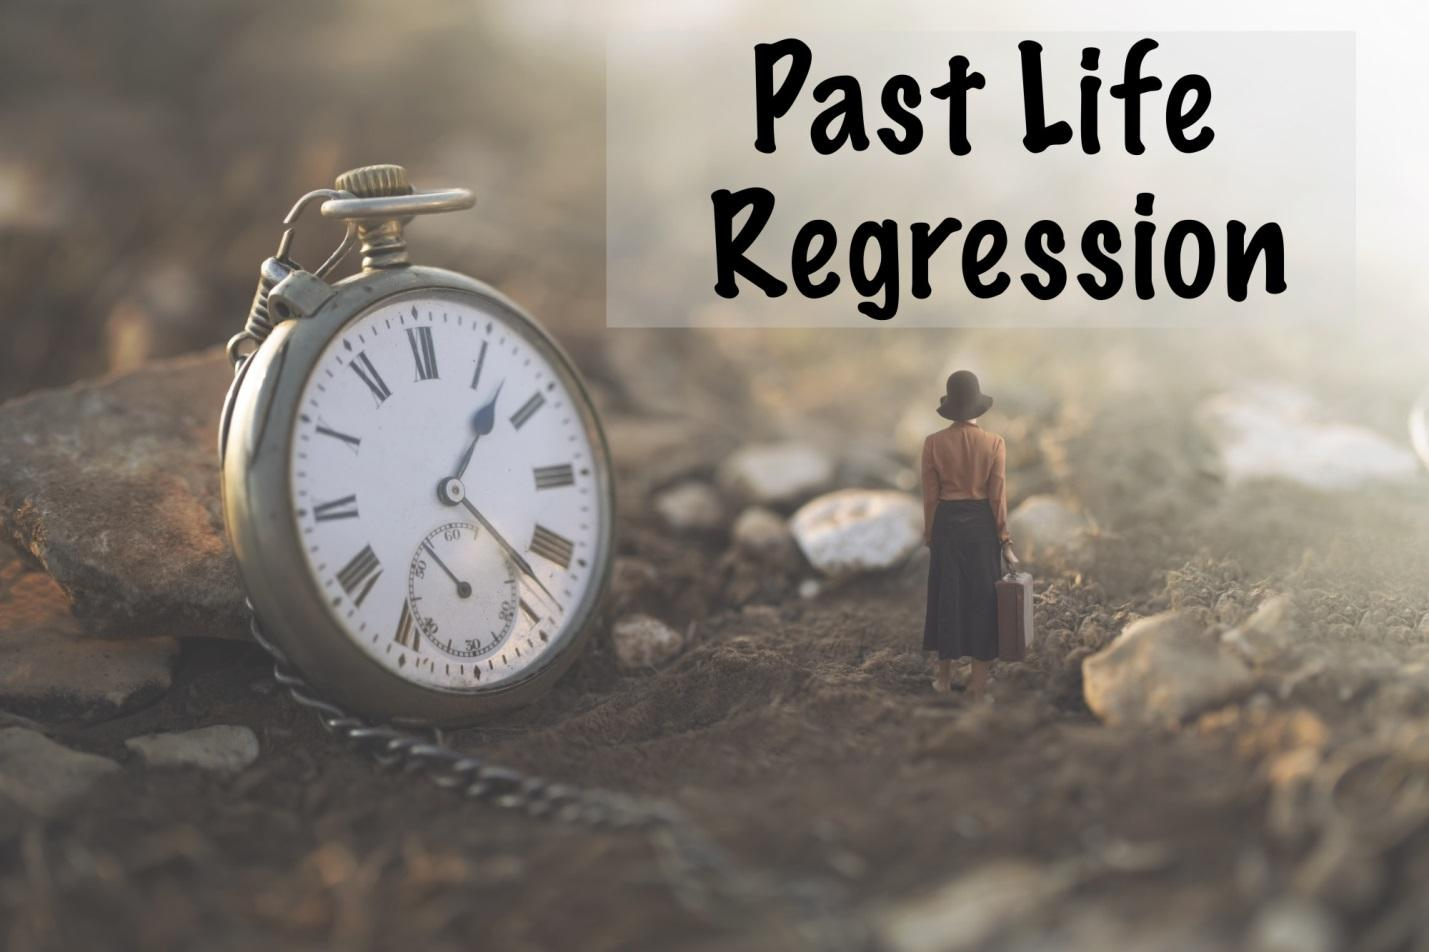 Past Life Regression: Is It Possible to Have Lived a Previous Life?